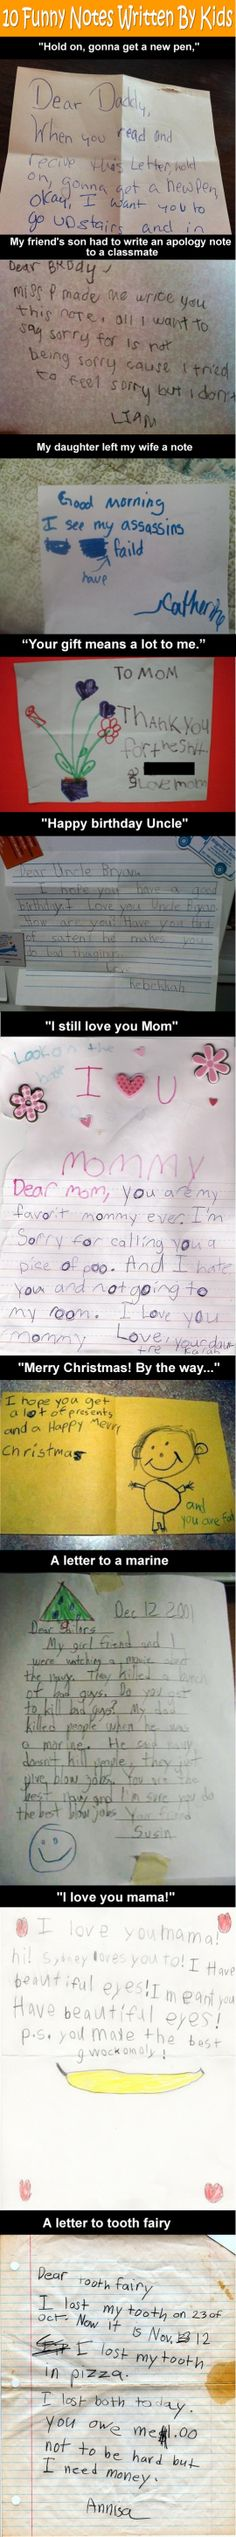 10 Funny Notes Written By Kids.